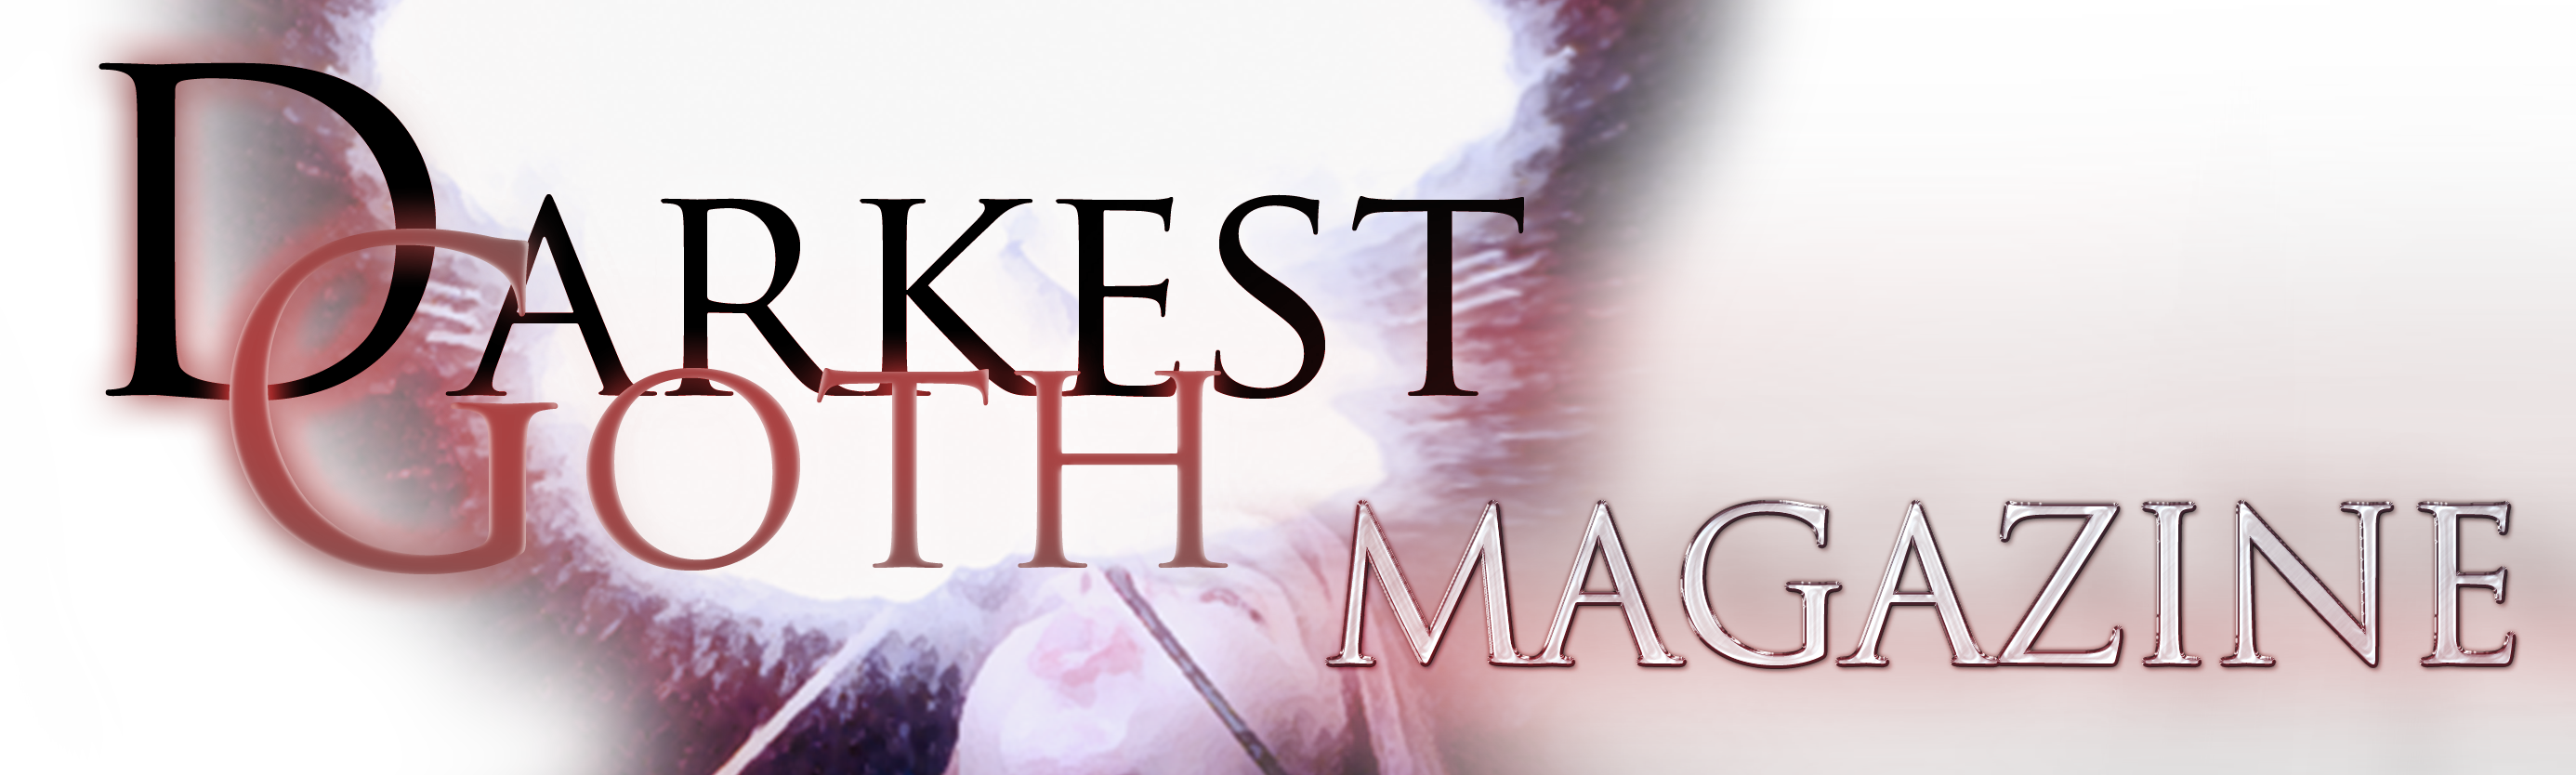 DGM Wide Banner (On Trans)